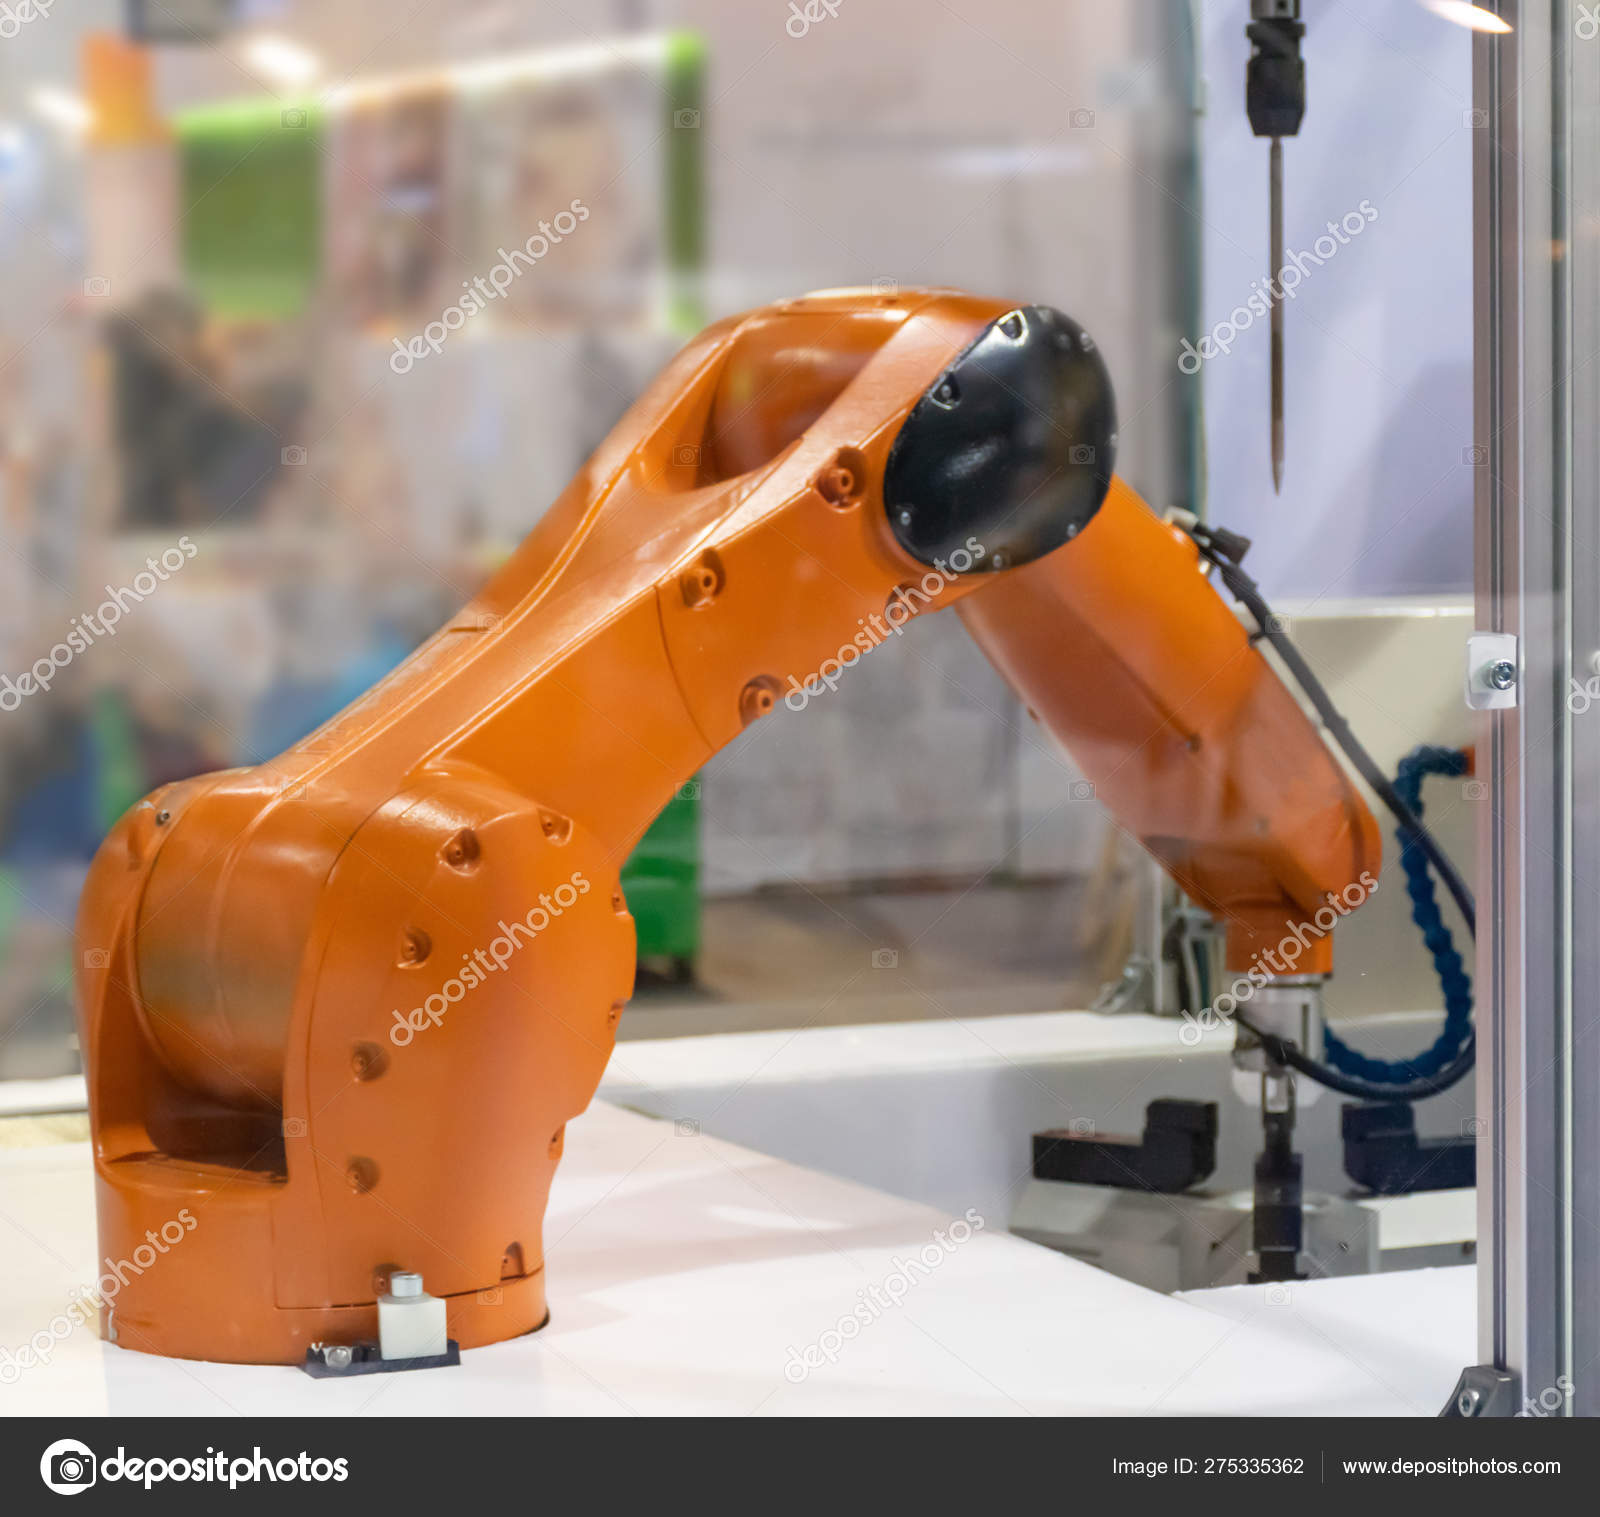 Robot Arm Writing Technology Mechanical Arm Industrial